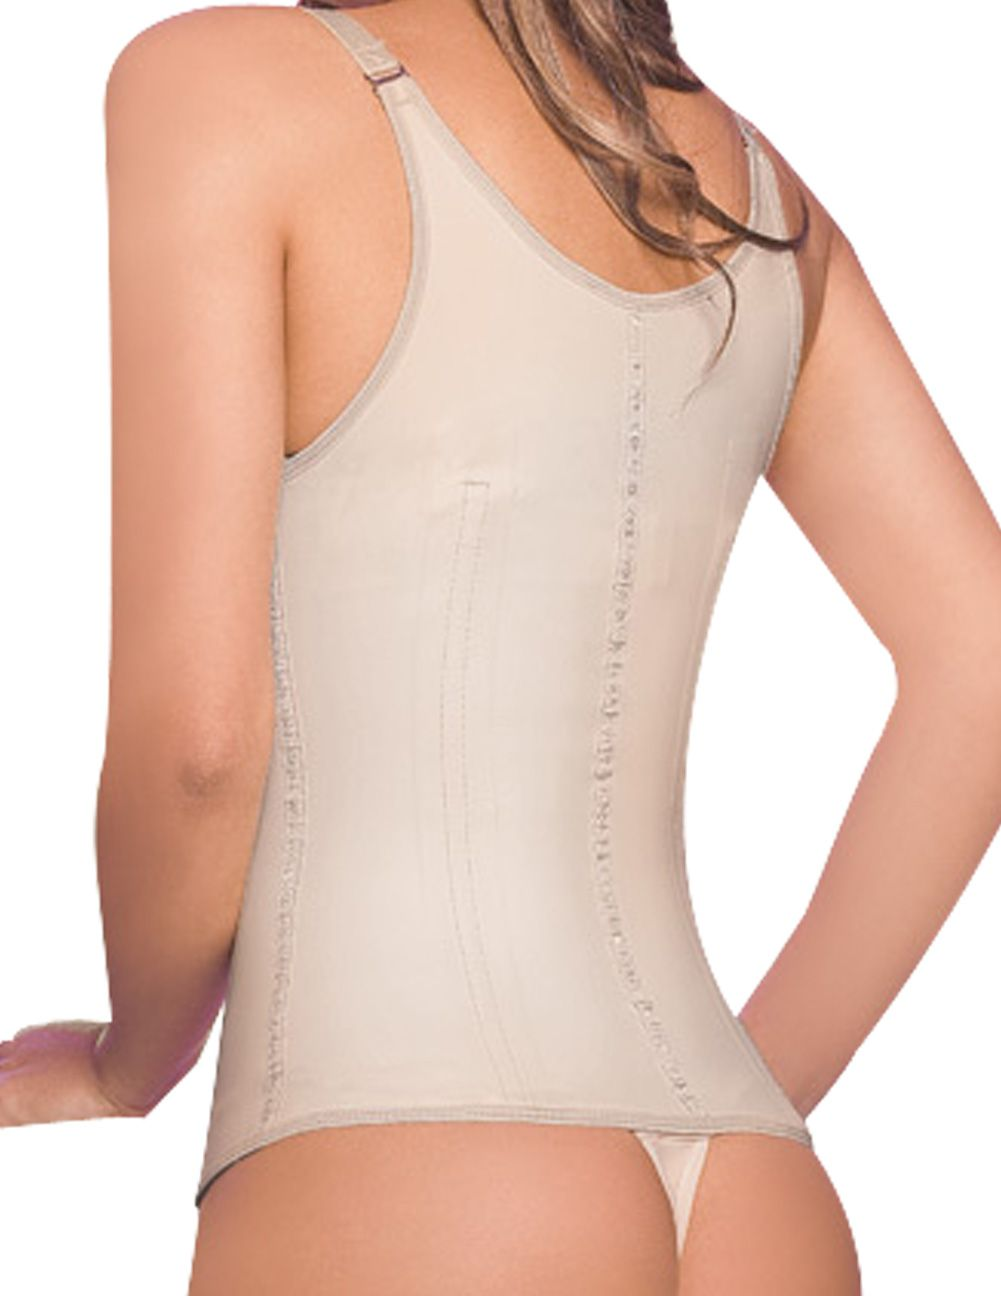 62f45773ddf Shapewear for Women Ann Chery 2028 Latex Corset Body Shaper L (36 Beige.  About this product. Picture 1 of 4  Picture 2 of 4  Picture 3 of 4  Picture  4 of 4